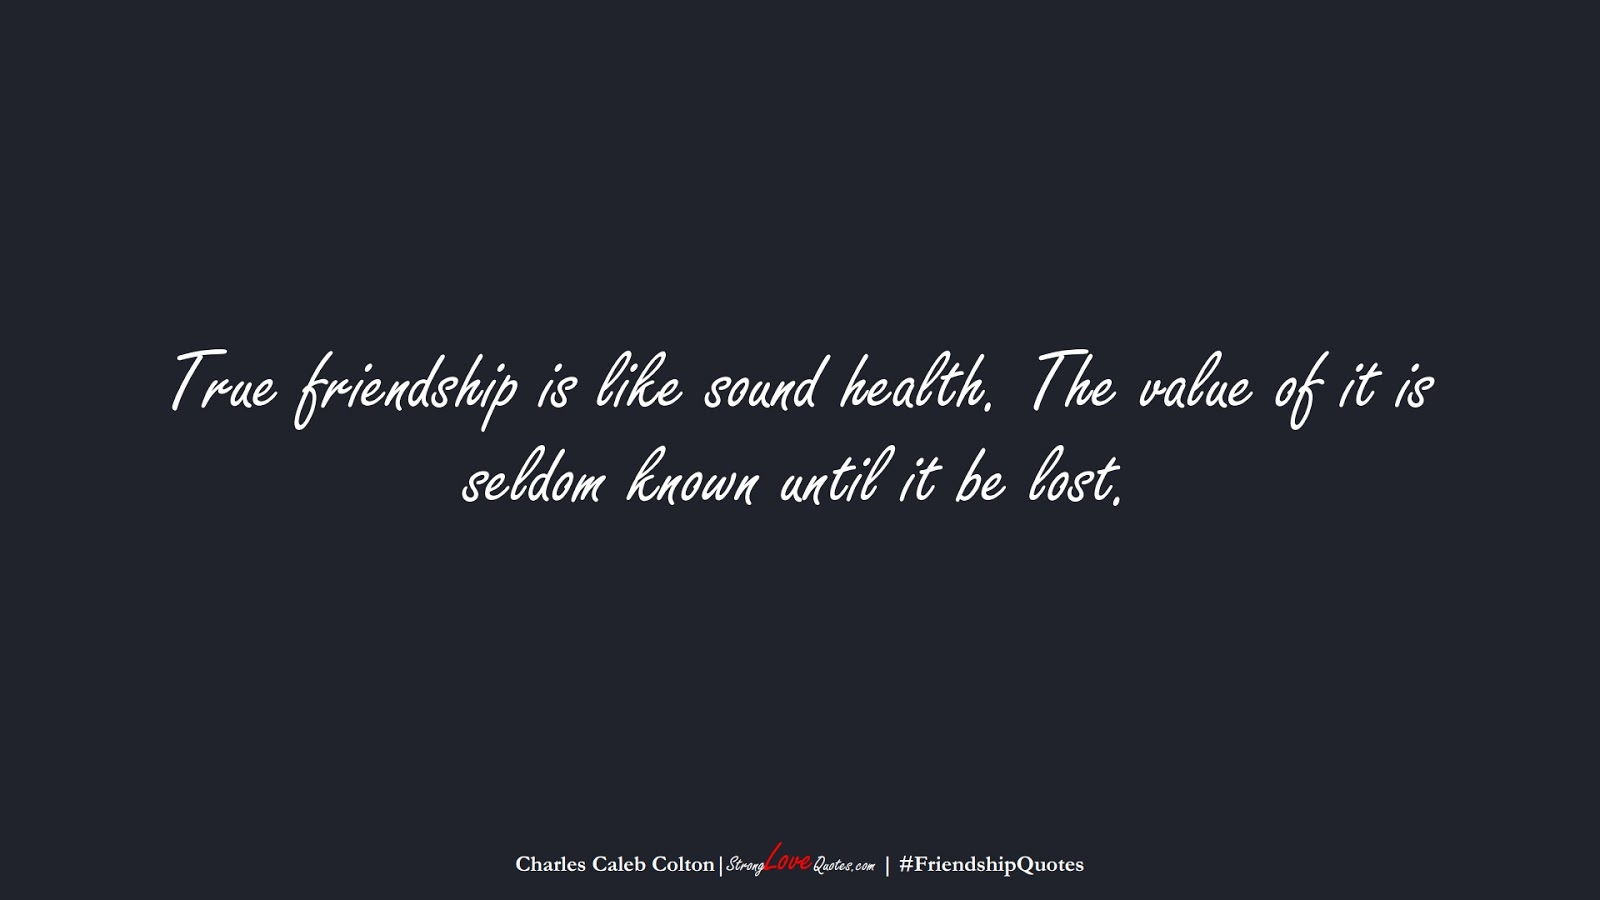 True friendship is like sound health. The value of it is seldom known until it be lost. (Charles Caleb Colton);  #FriendshipQuotes